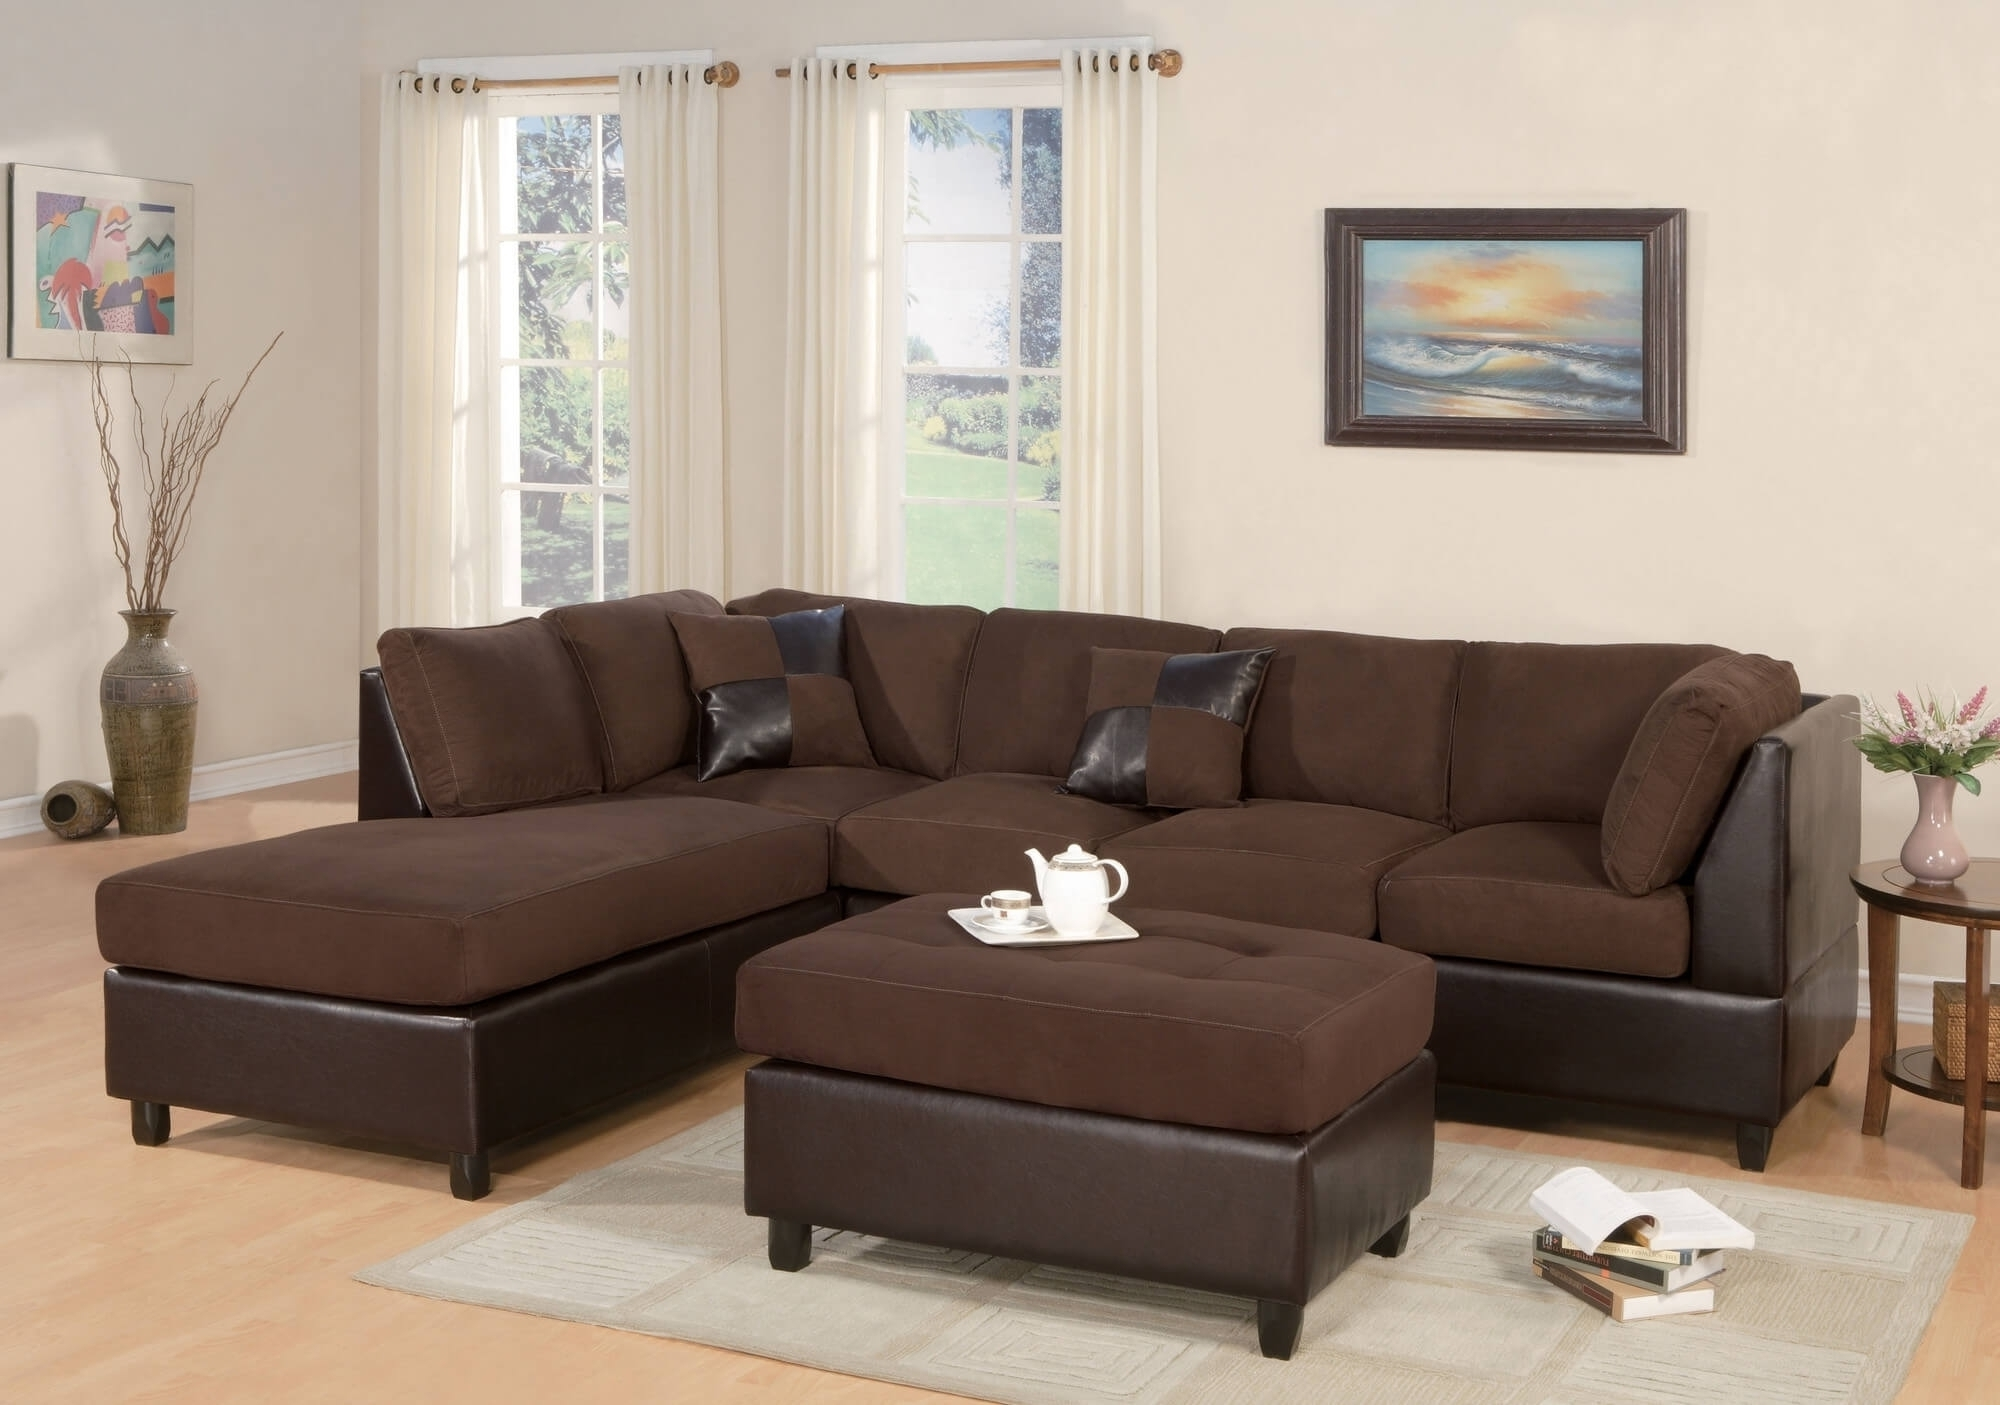 Widely Used Photos Sectional Sofas Under $1000 – Buildsimplehome Regarding Sectional Sofas Under  (View 5 of 15)